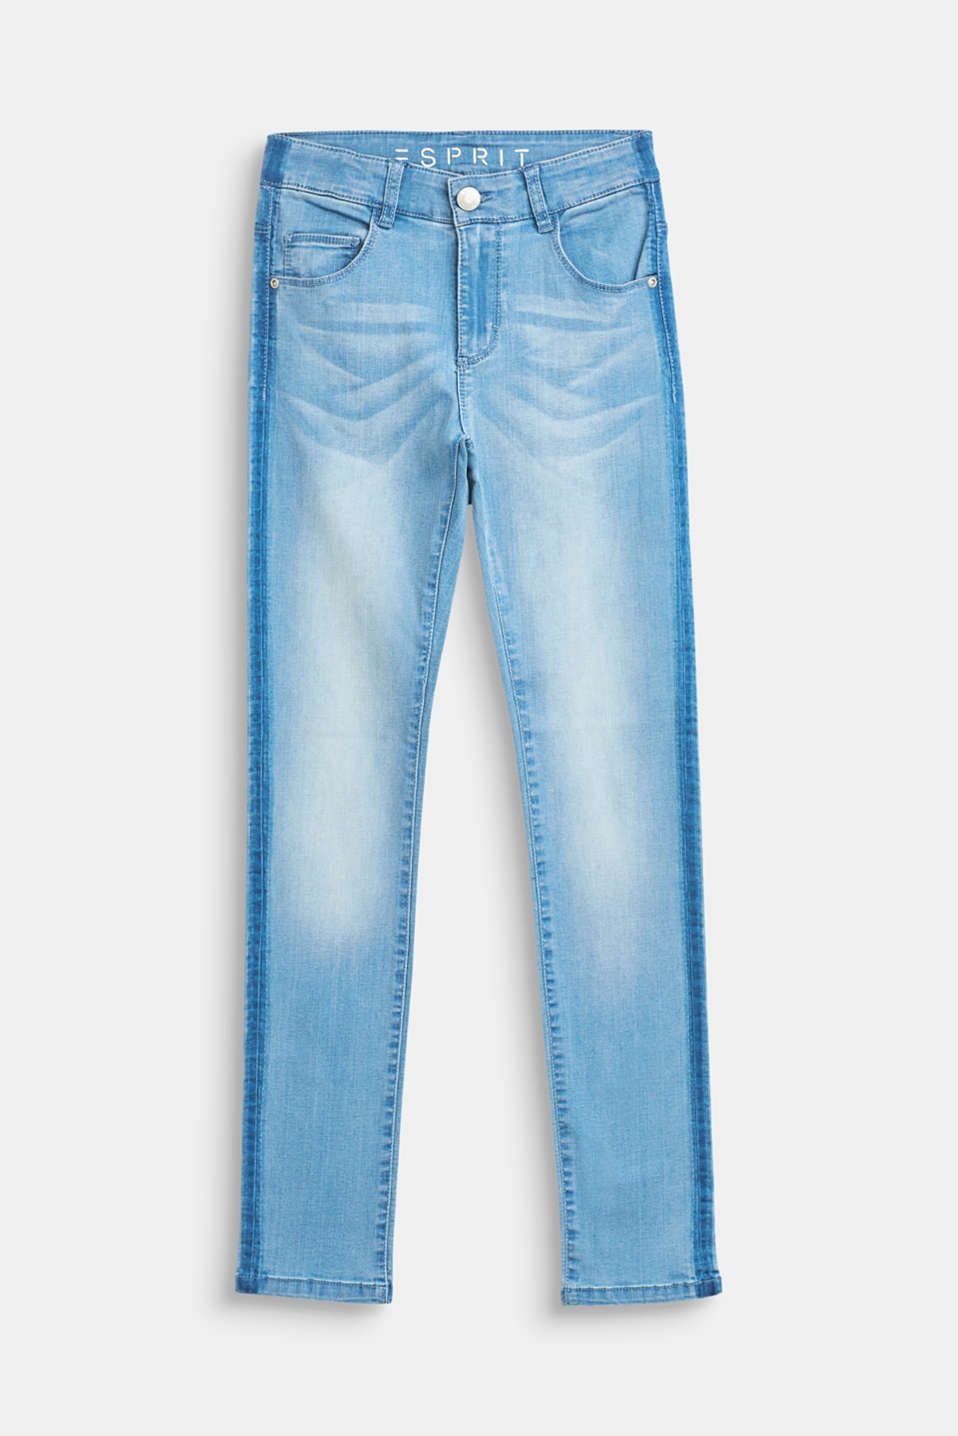 Esprit - Stretch jeans with stripes and an adjustable waist